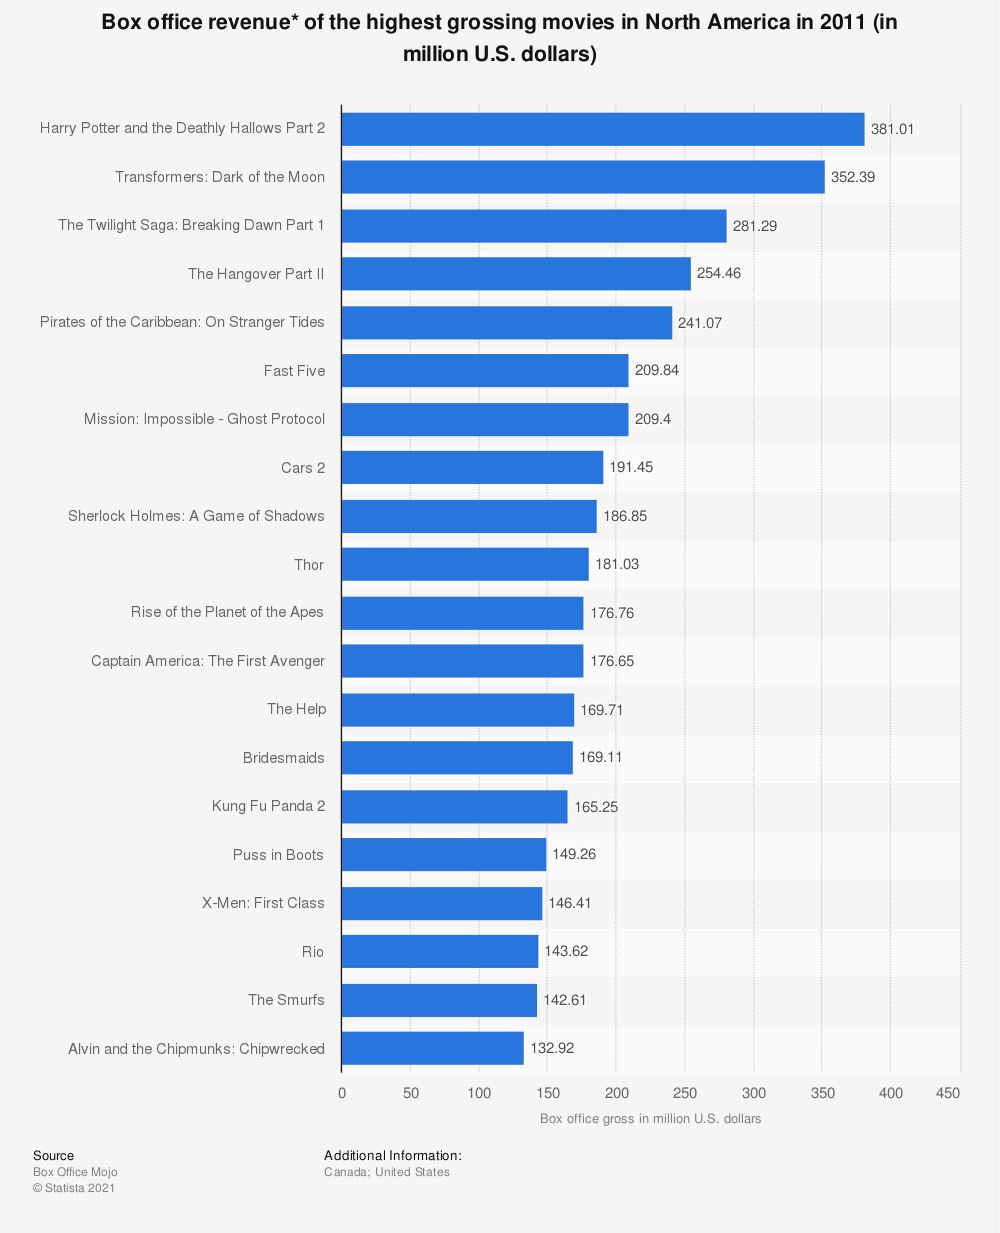 Statistic: Box office revenue* of the highest grossing movies in North America in 2011 (in million U.S. dollars) | Statista